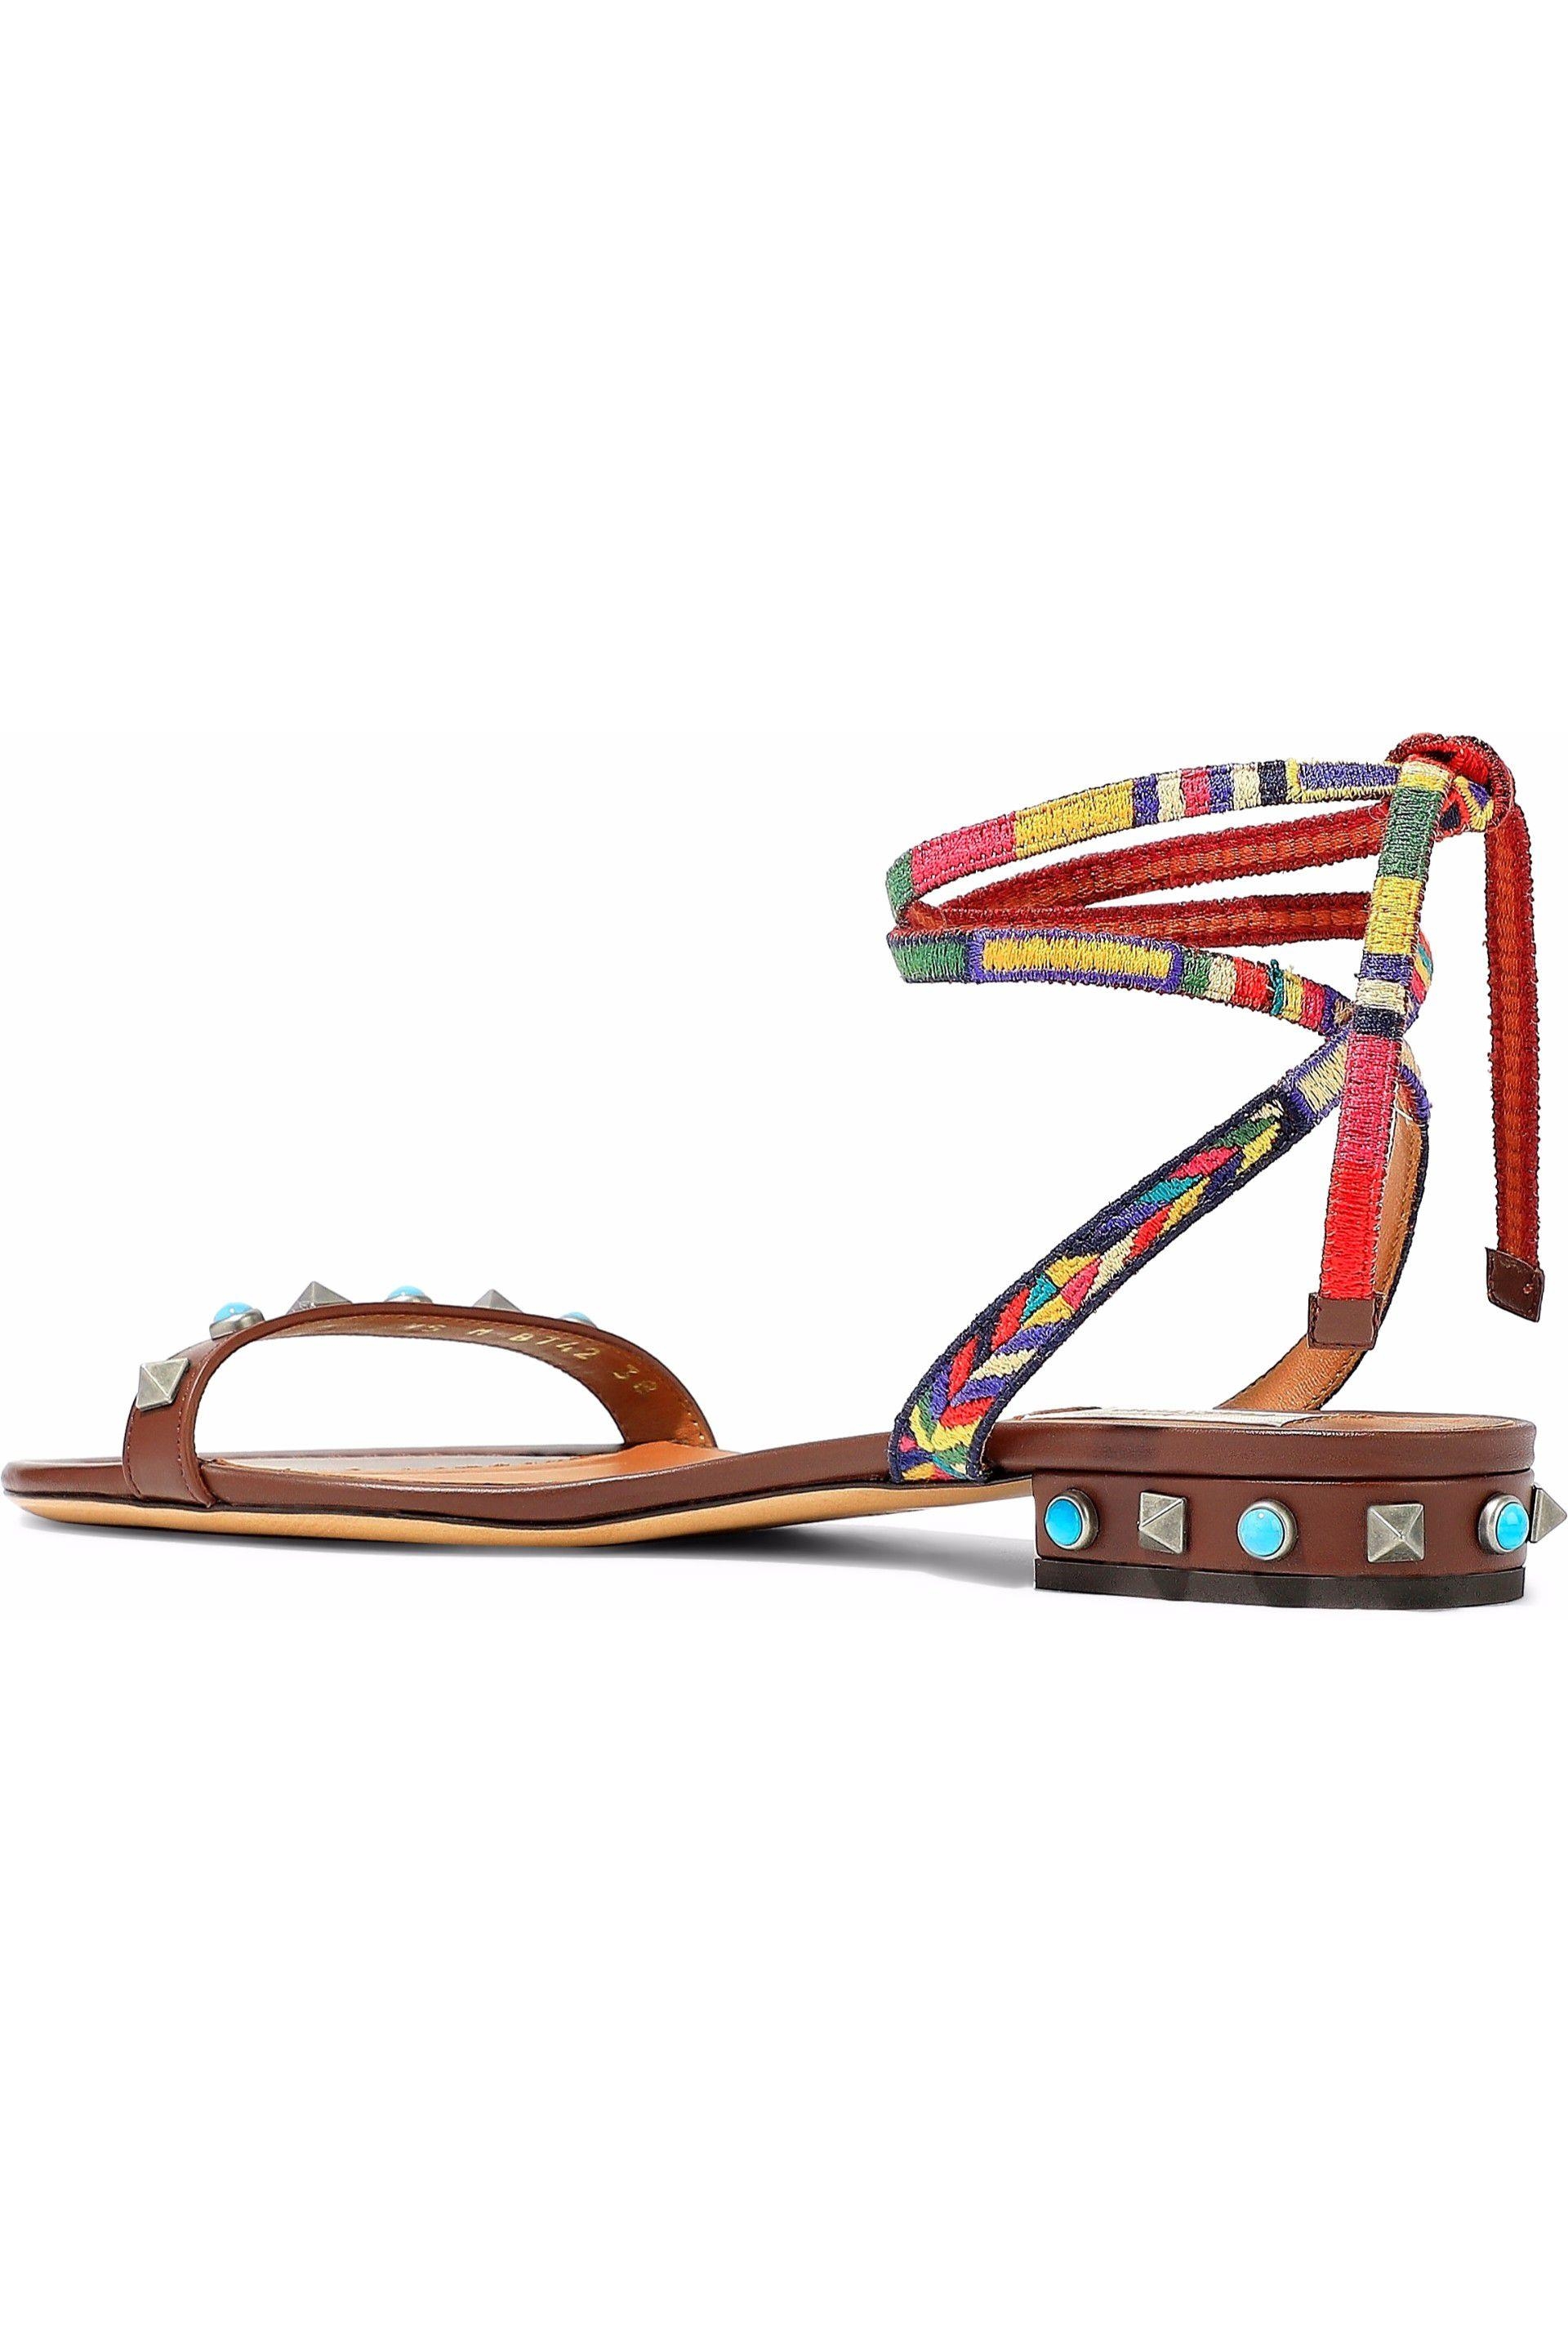 567b00784e6e Valentino - Brown Woman Rockstud Rolling Woven And Leather Sandals  Chocolate - Lyst. View fullscreen